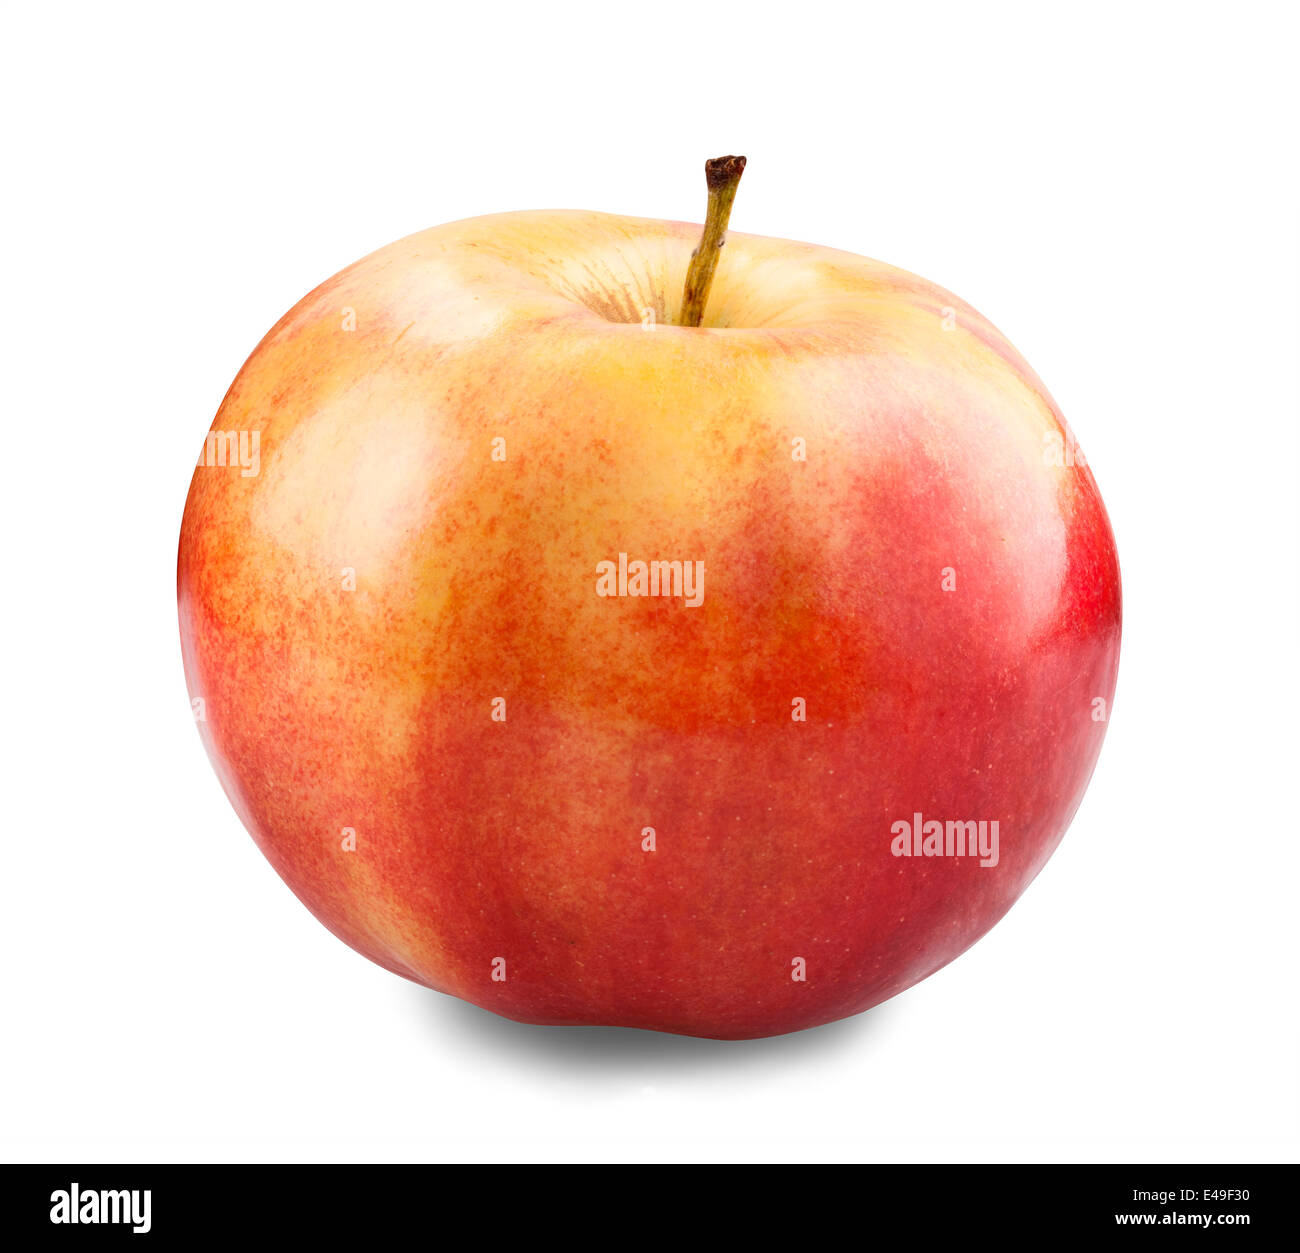 juicy red apple on a white background with clipping path - Stock Image